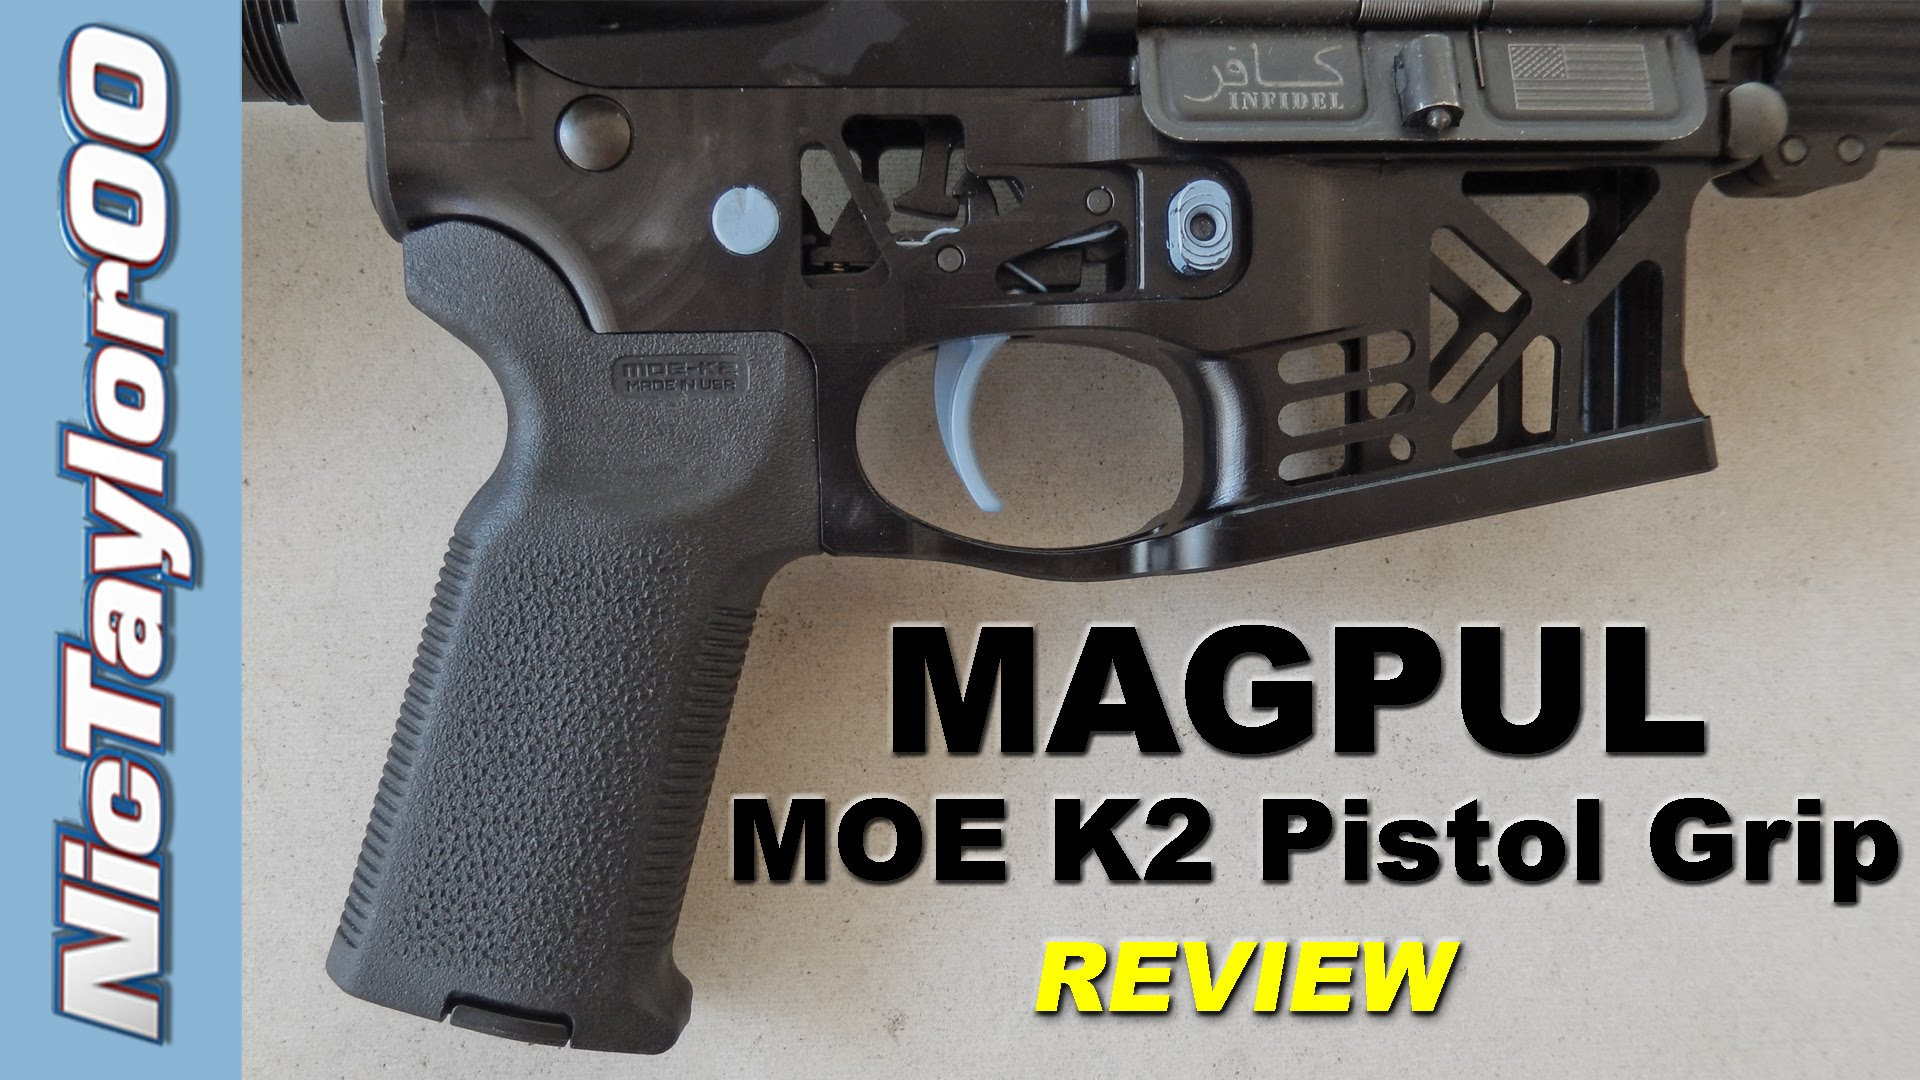 Magpul AR15 / M4 MOE K2 Pistol Grip Review